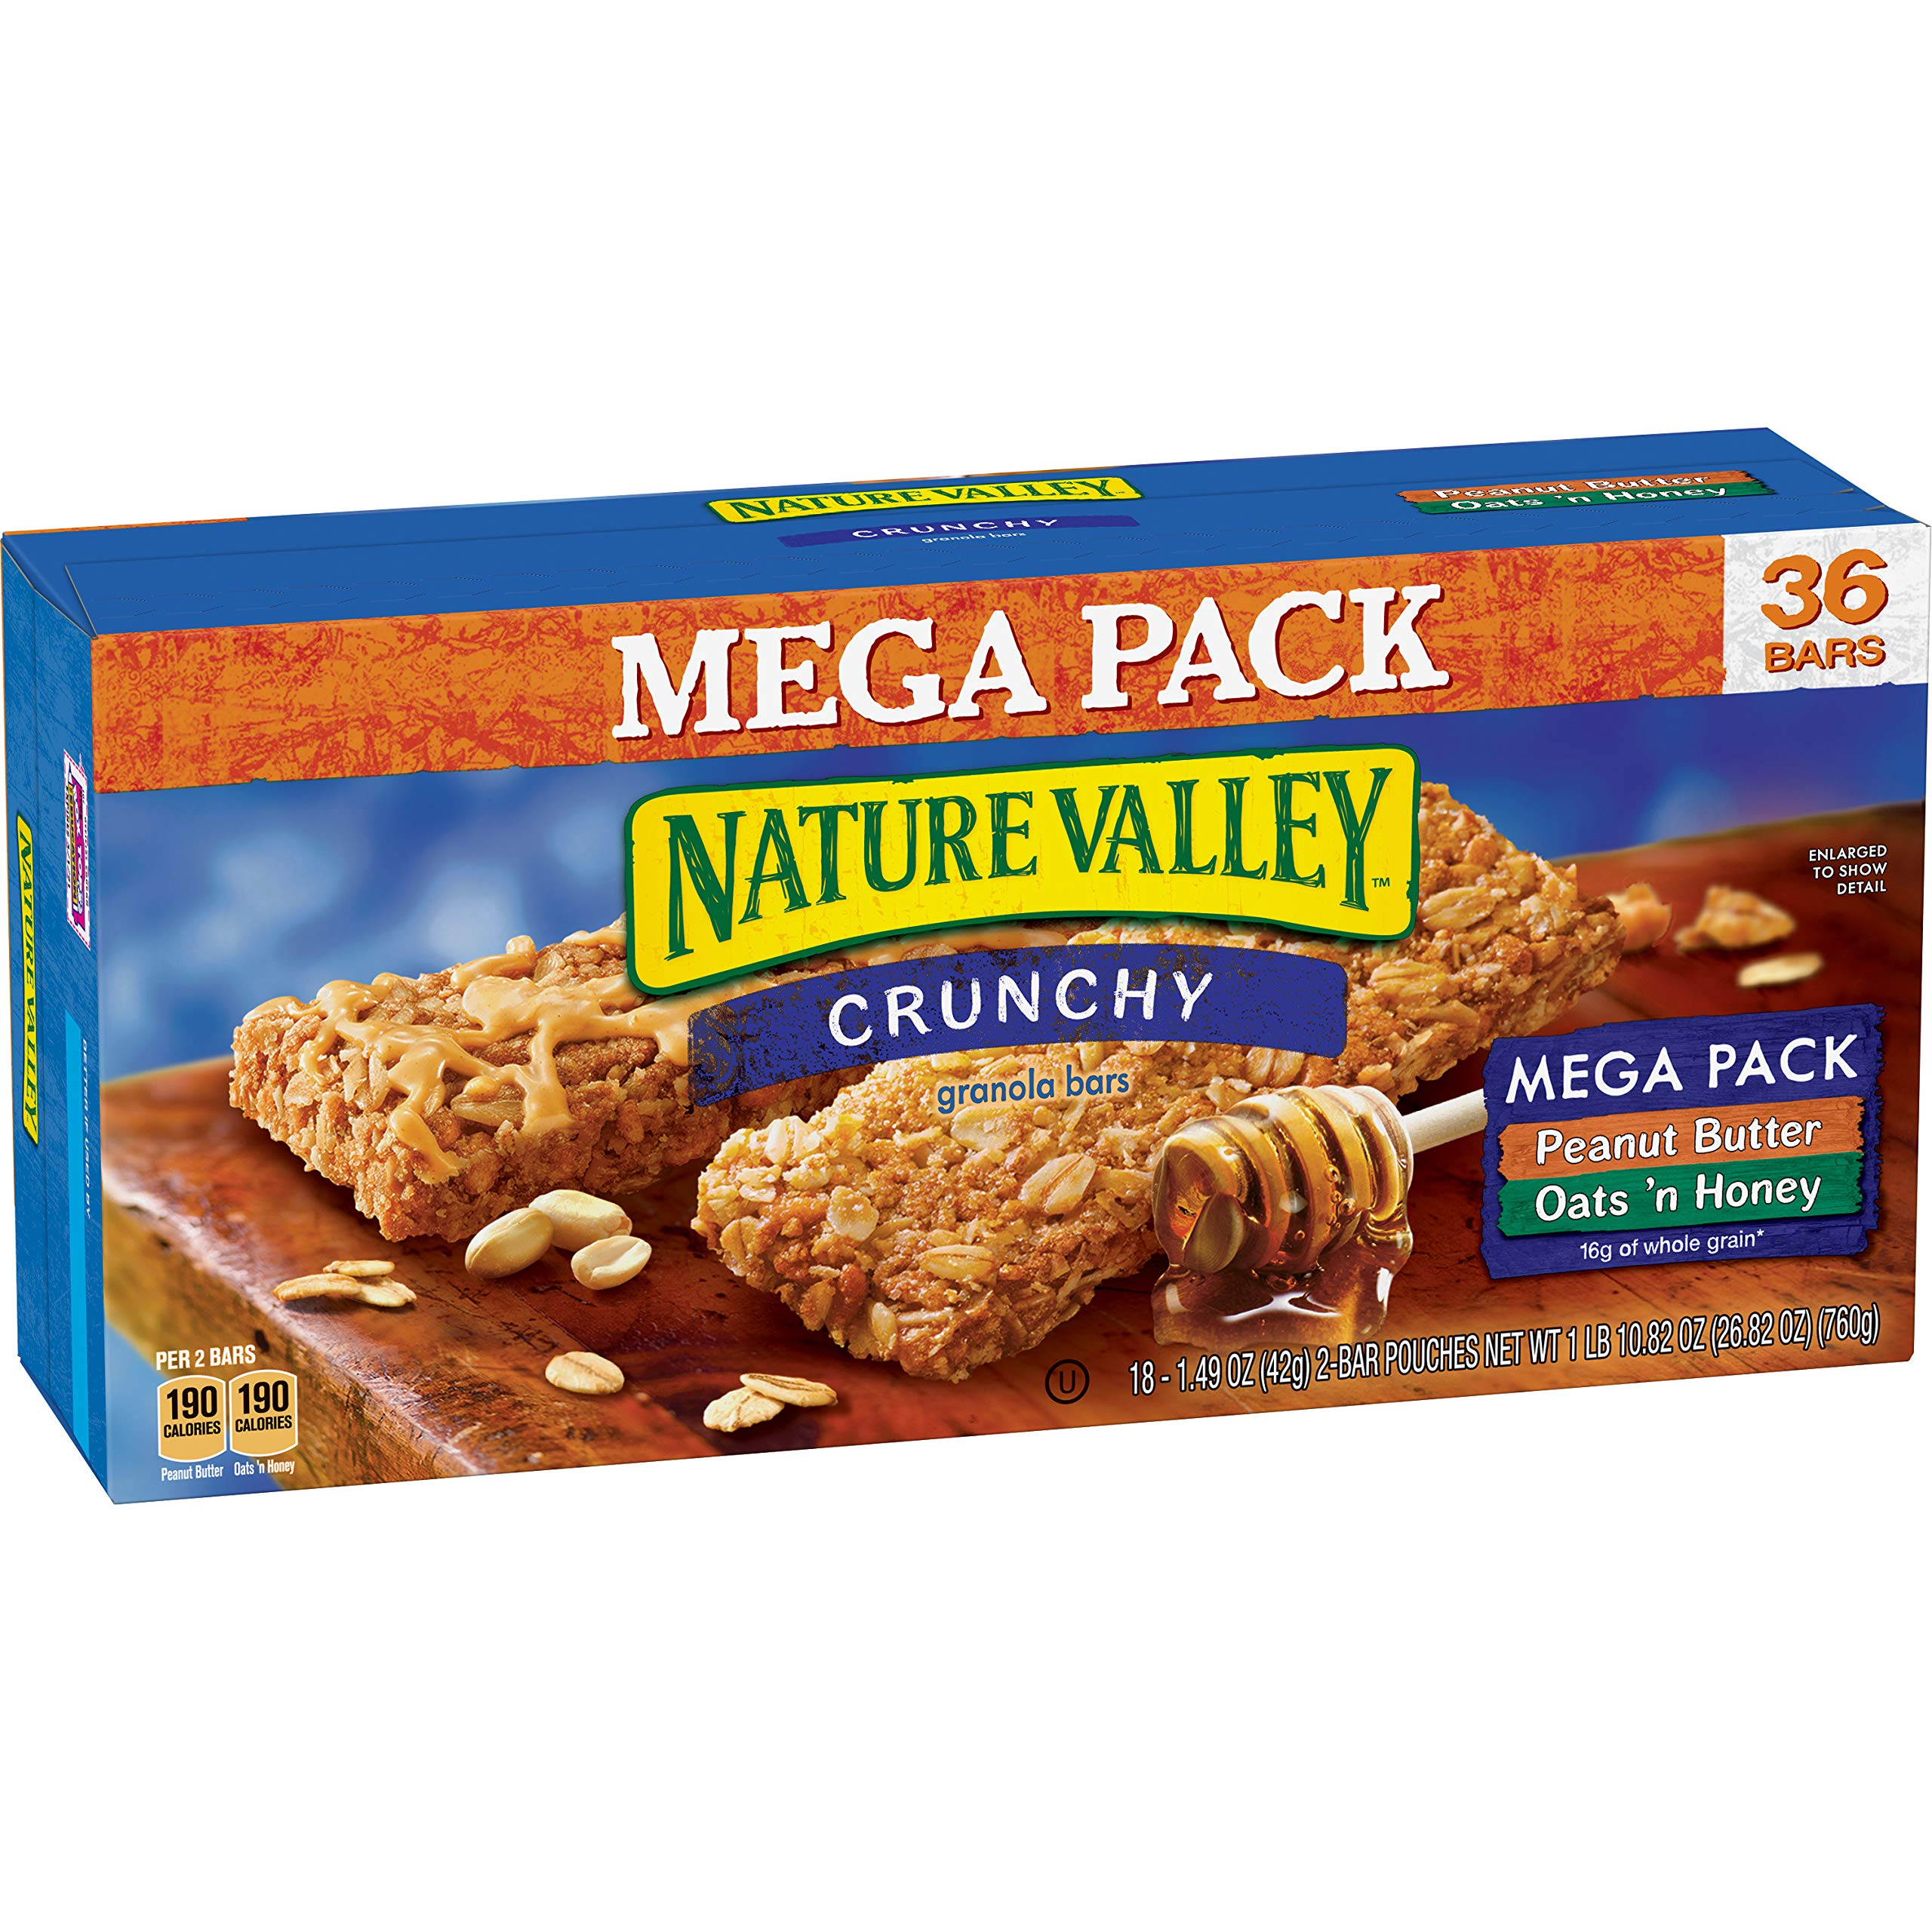 Nature Valley Granola Bars, Crunchy, Mega Pack of Peanut Butter and Oats 'n Honey, 26.82 Ounce (Pack of 1) by Nature Valley